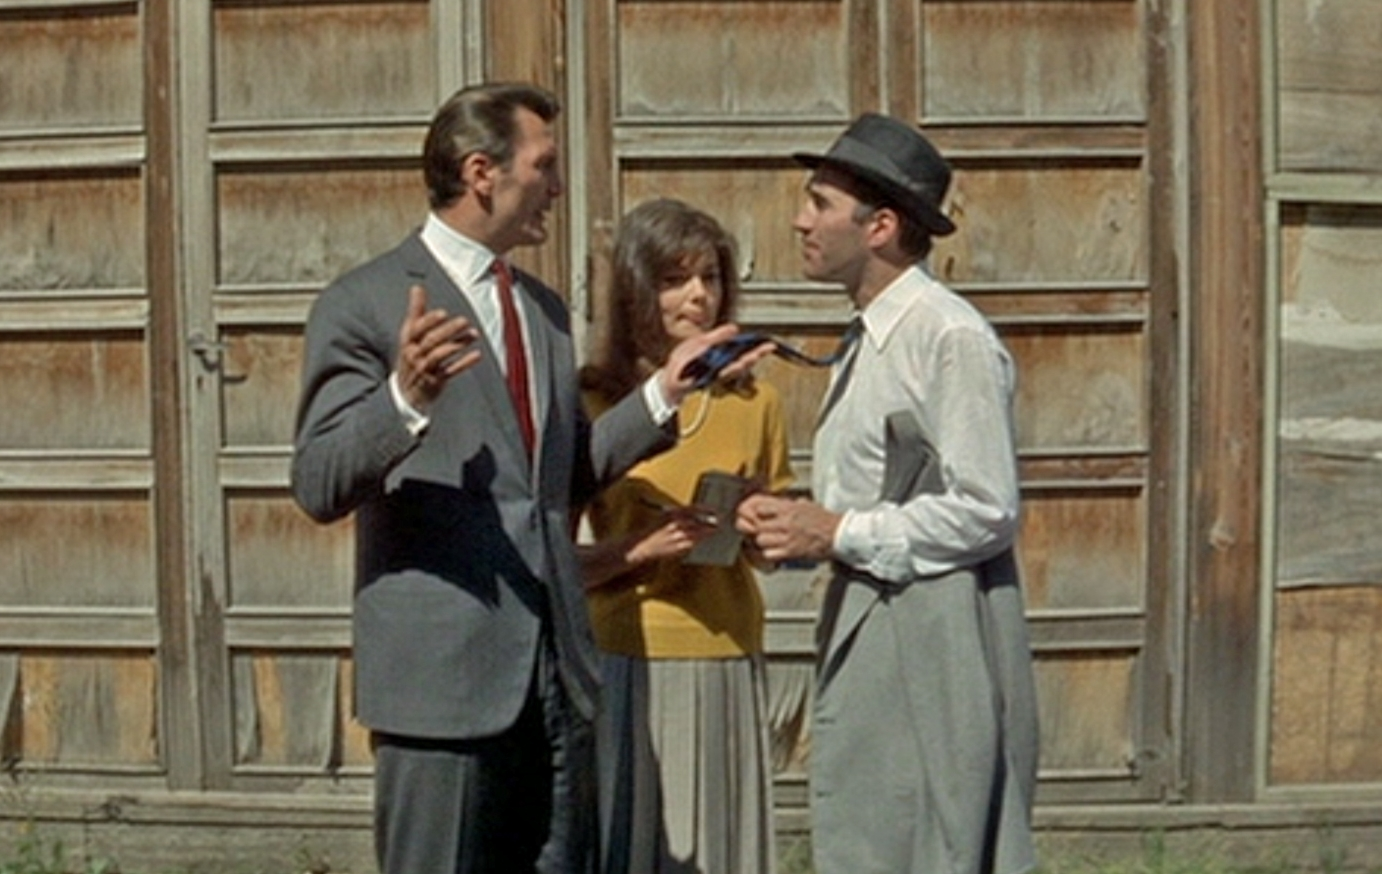 Piccoli is the fatally passive writer Paul Javal conversing with American film producer Prokosch (Jack Palance)